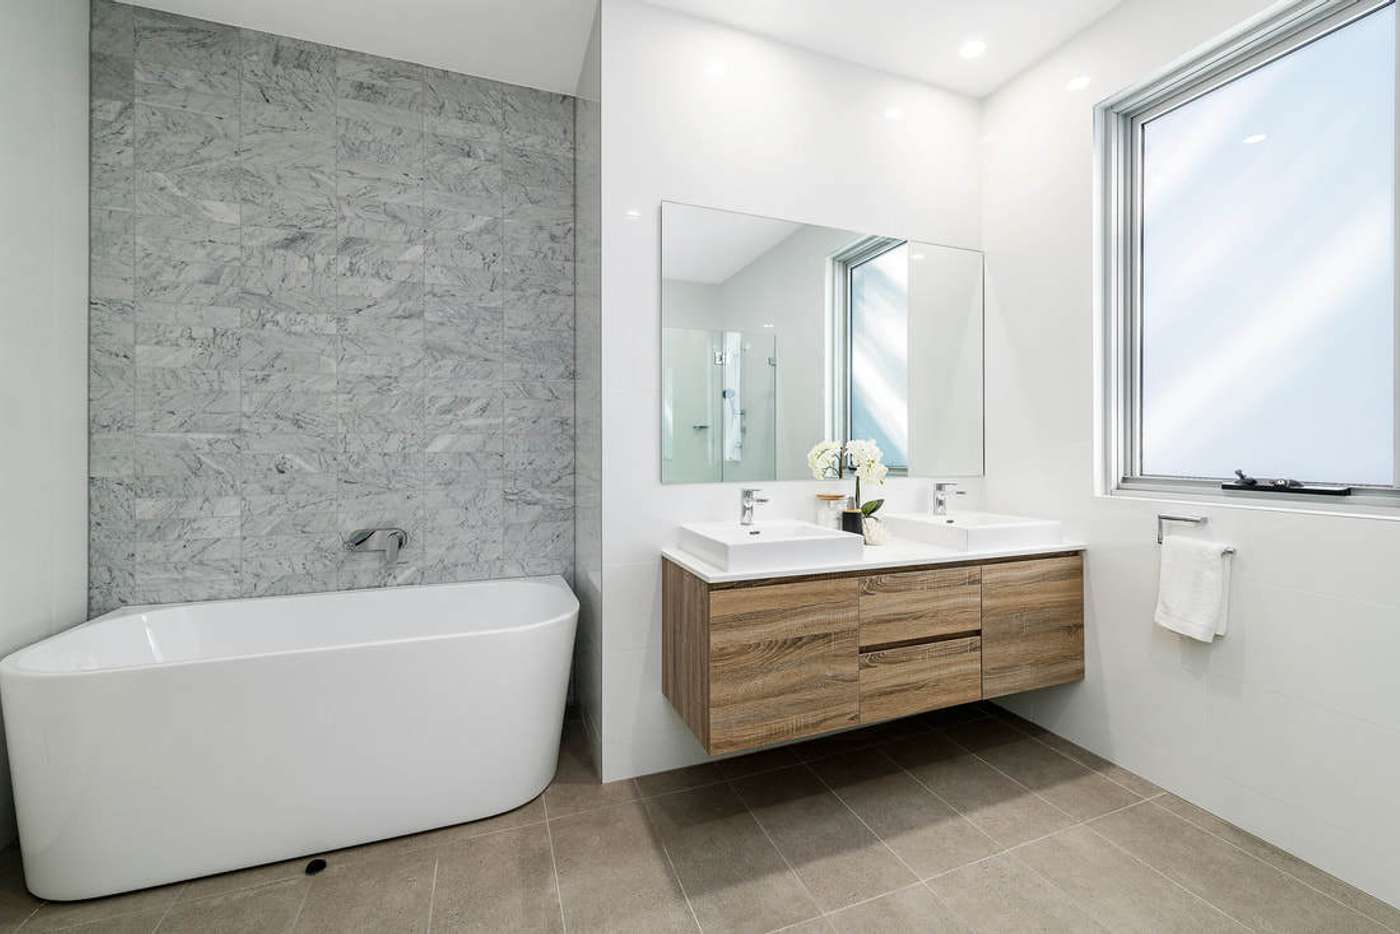 Fifth view of Homely townhouse listing, 6/10 Newhaven Place, St Ives NSW 2075